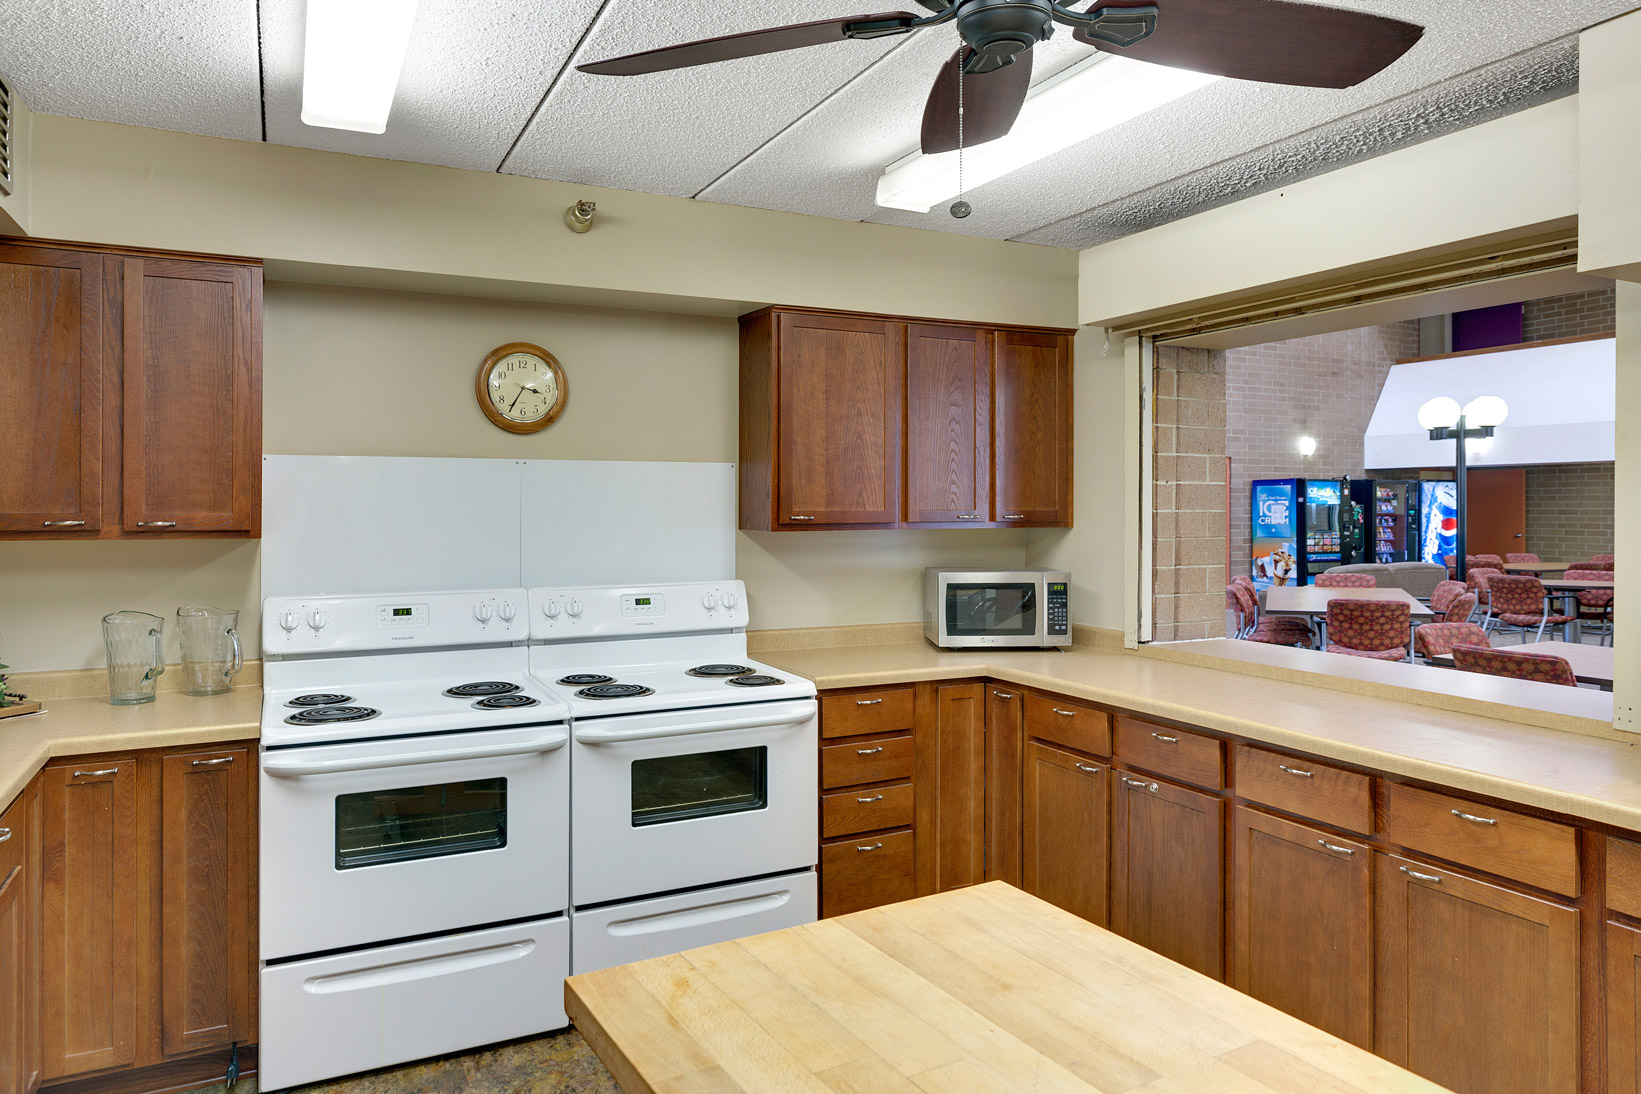 Entertain In Style, A Full Kitchen At Your Disposal.